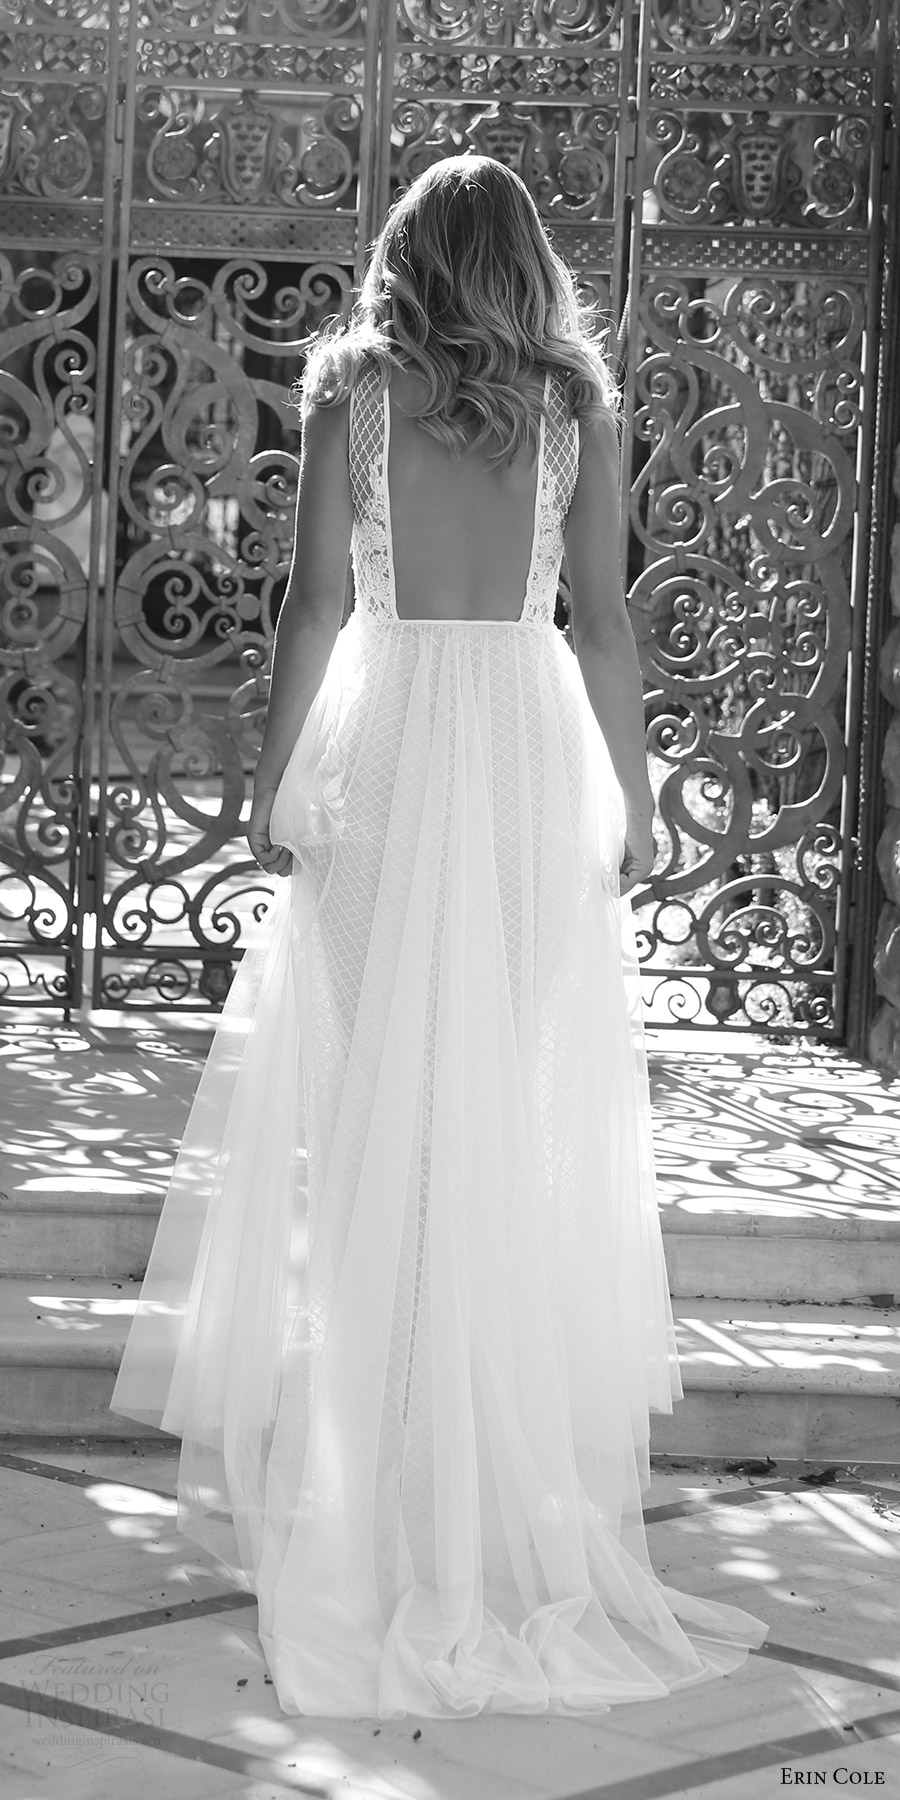 erin cole fall 2017 bridal sleeveless deep v neck aline lace embellished bodice wedding dress (amandine) bv romantic low back train